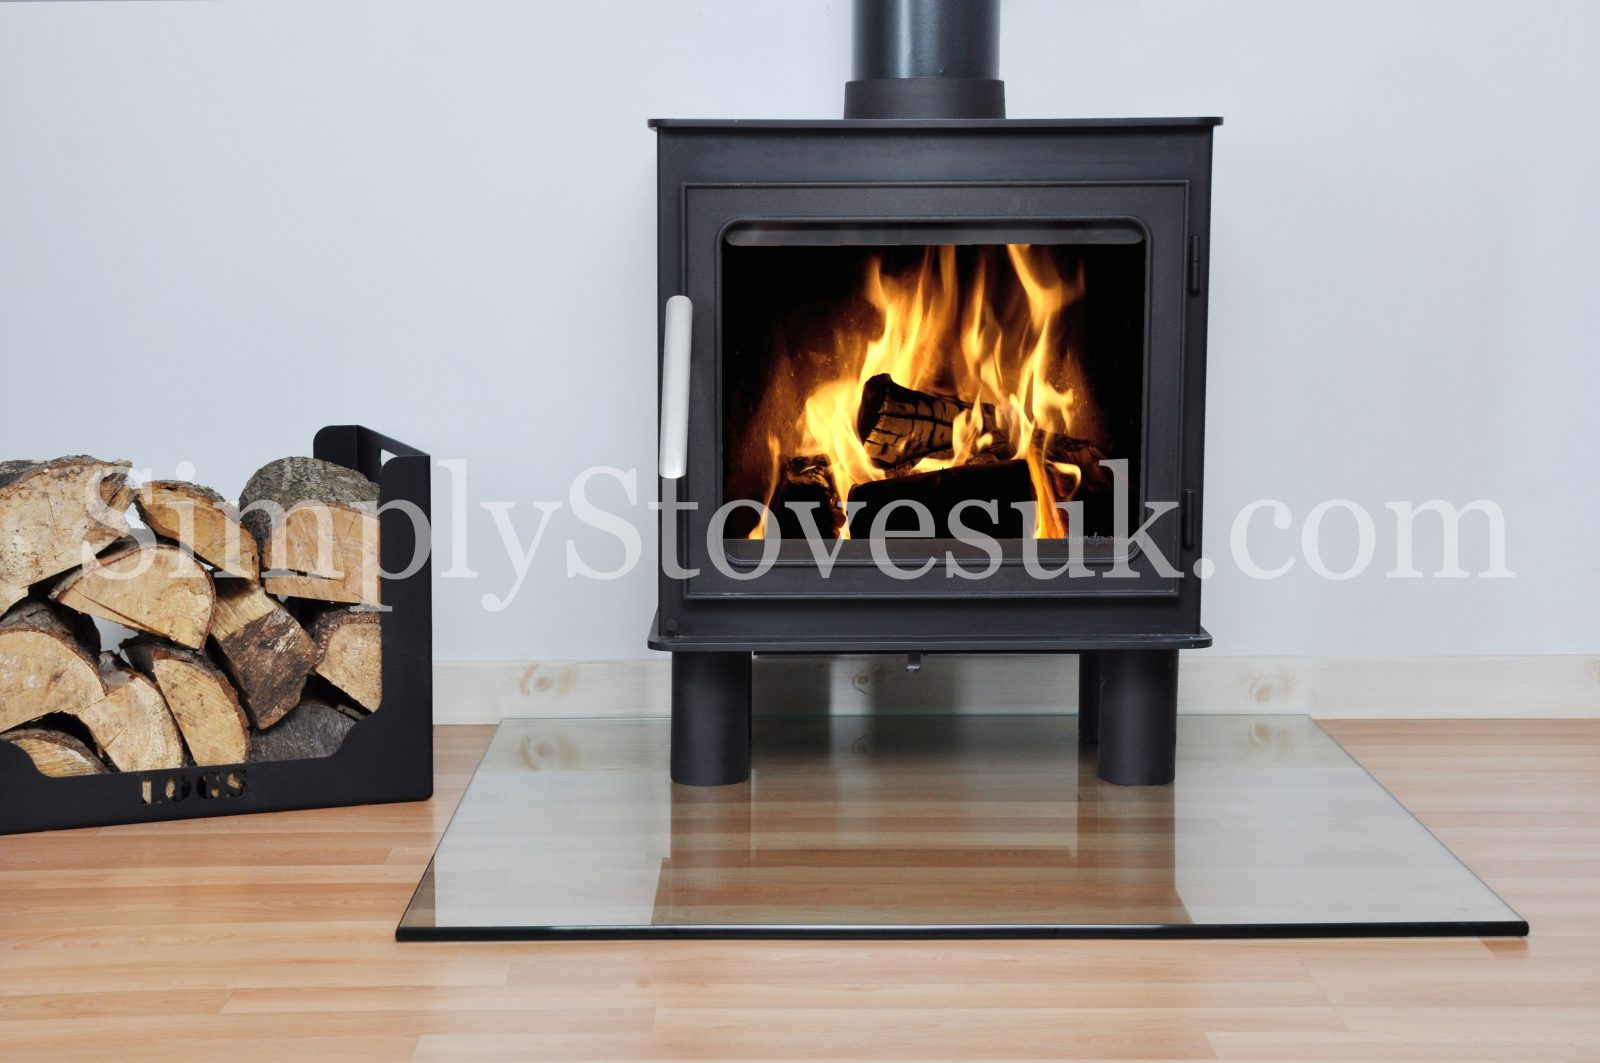 Square Medium Glass Hearth Floor Plate Simply Stoves